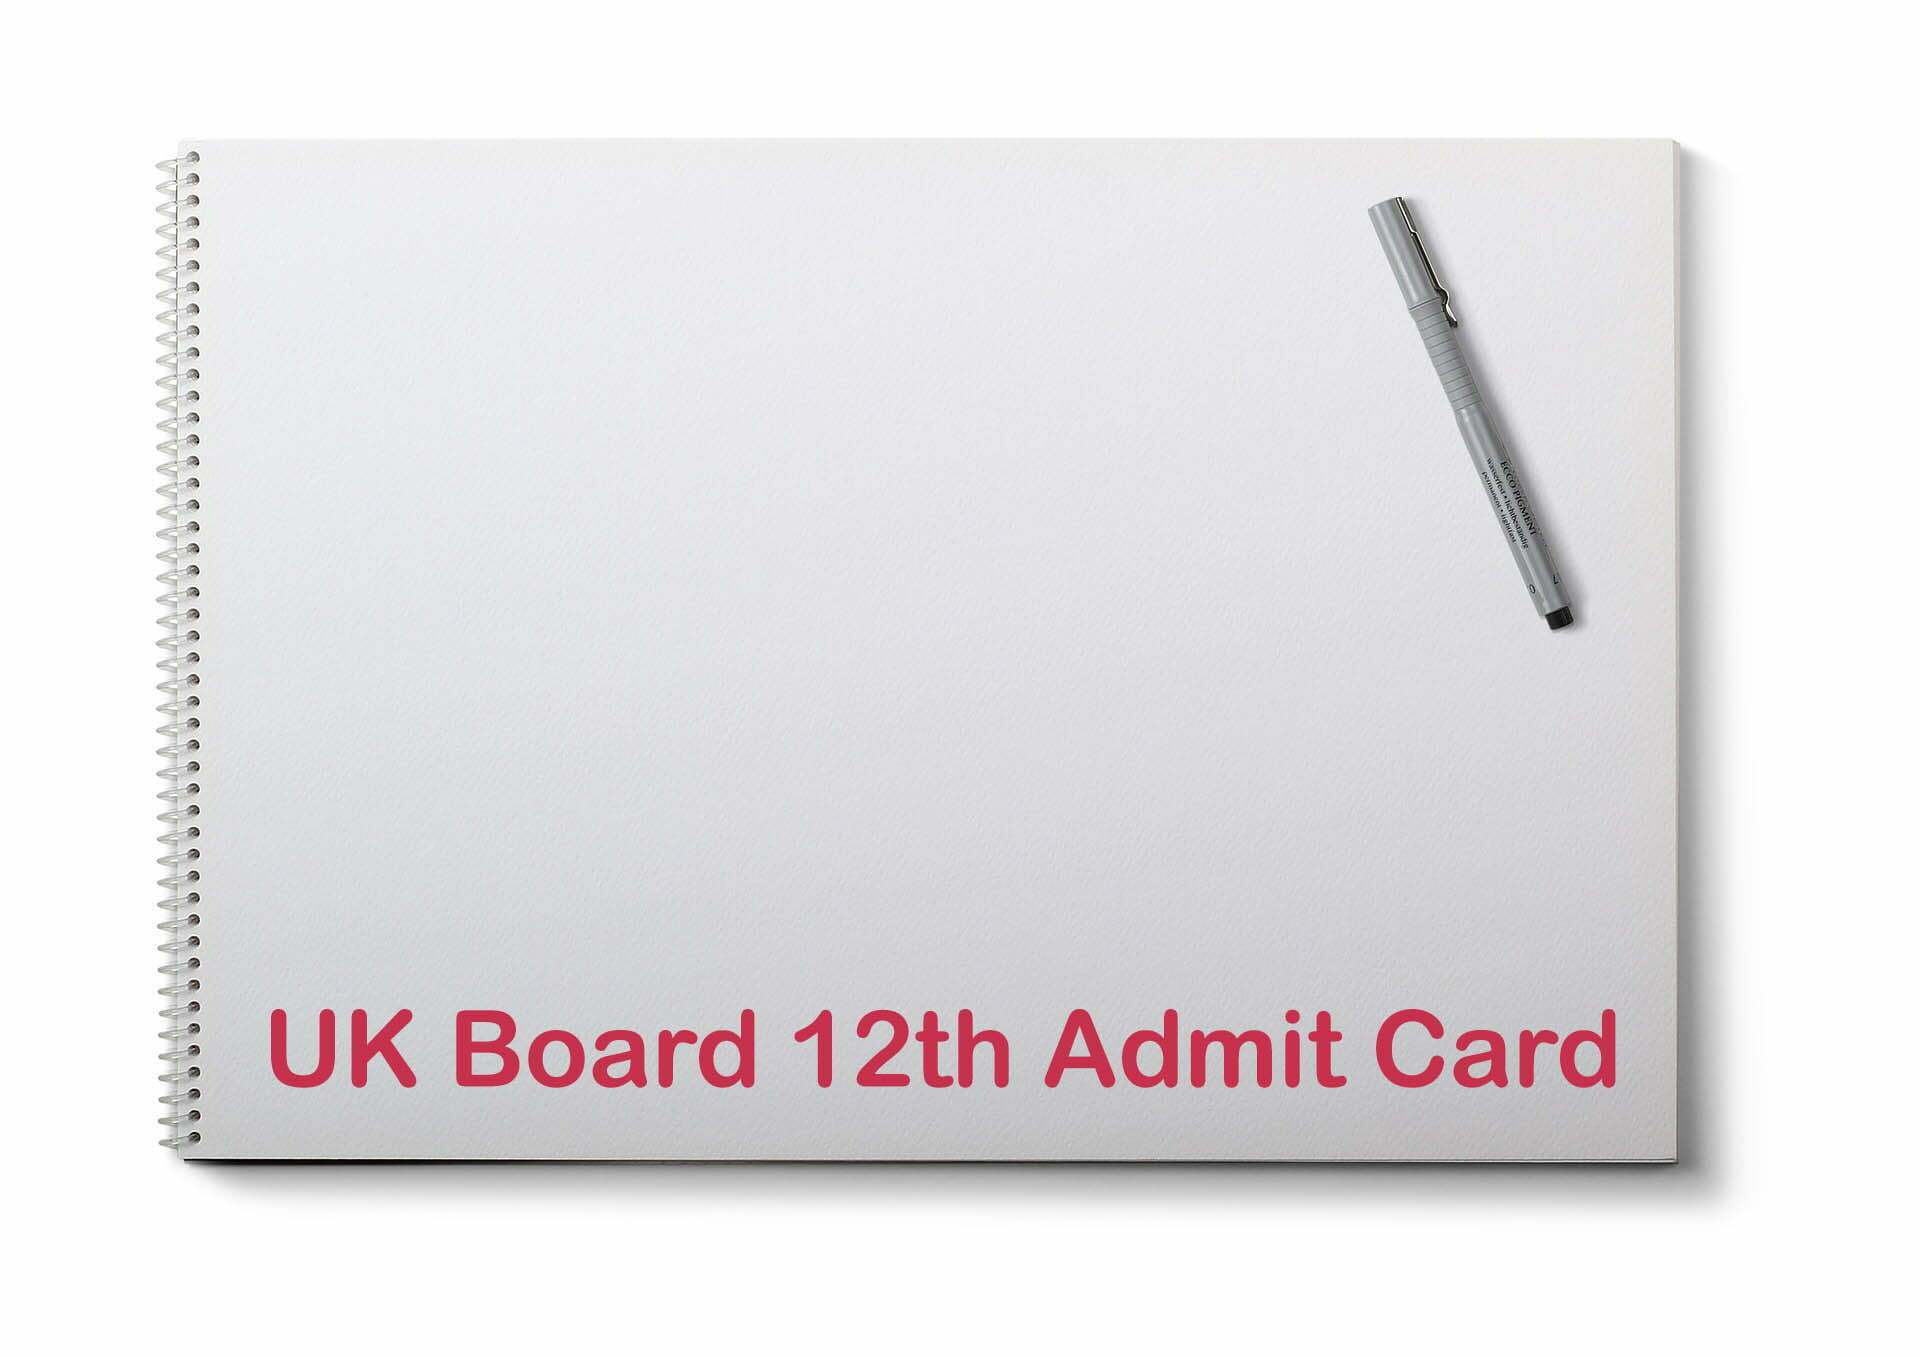 UK Board 12th Admit Card